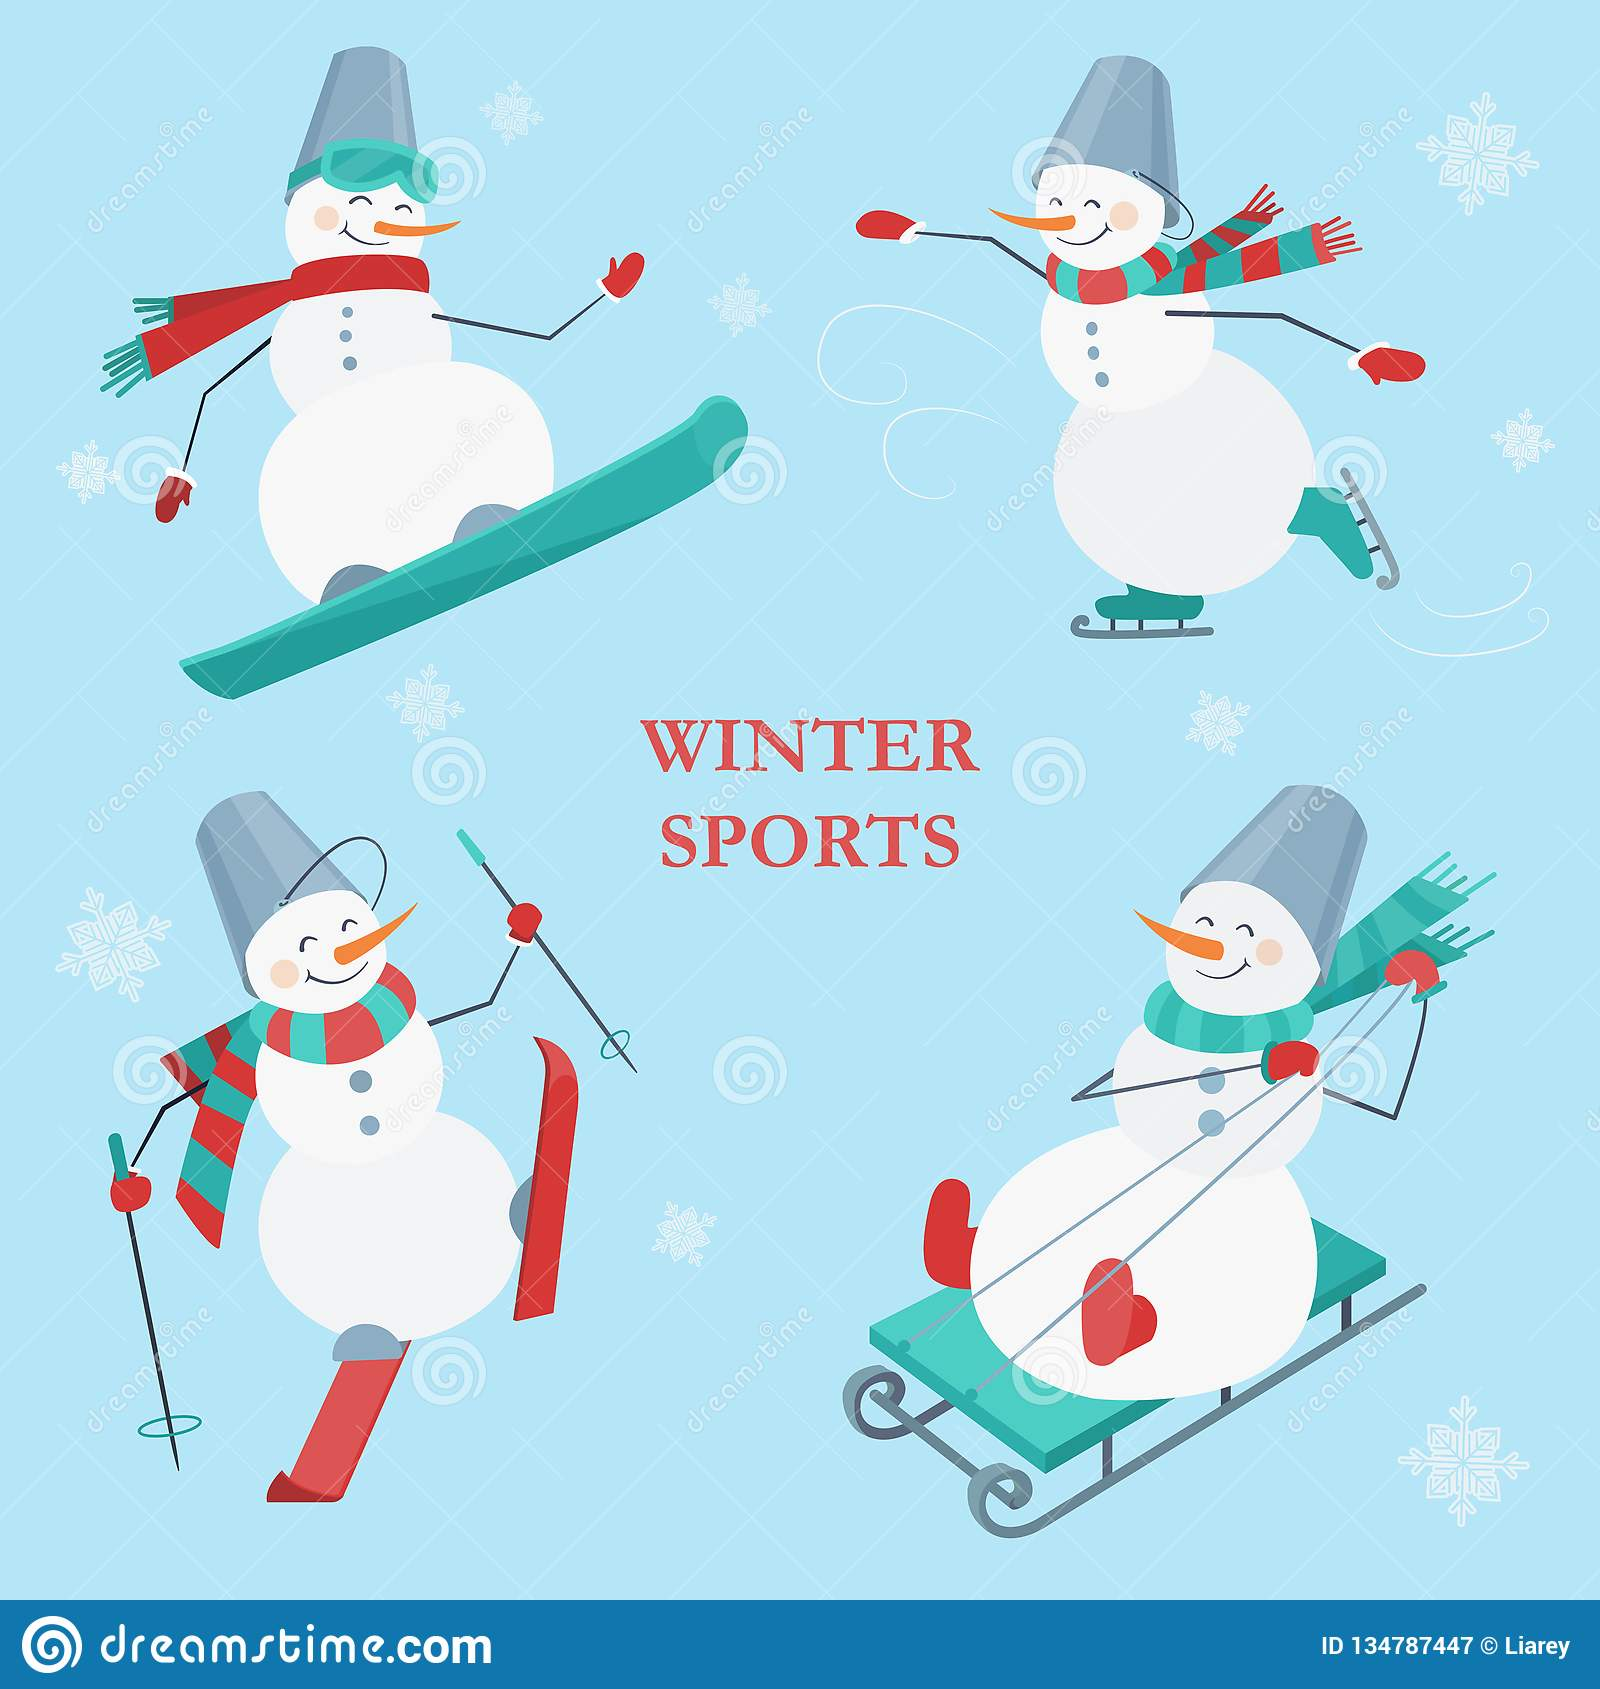 Set of snowmen on a blue background with snowflakes. Winter sports. Snowboarding, skating, skiing and sledging snowman.